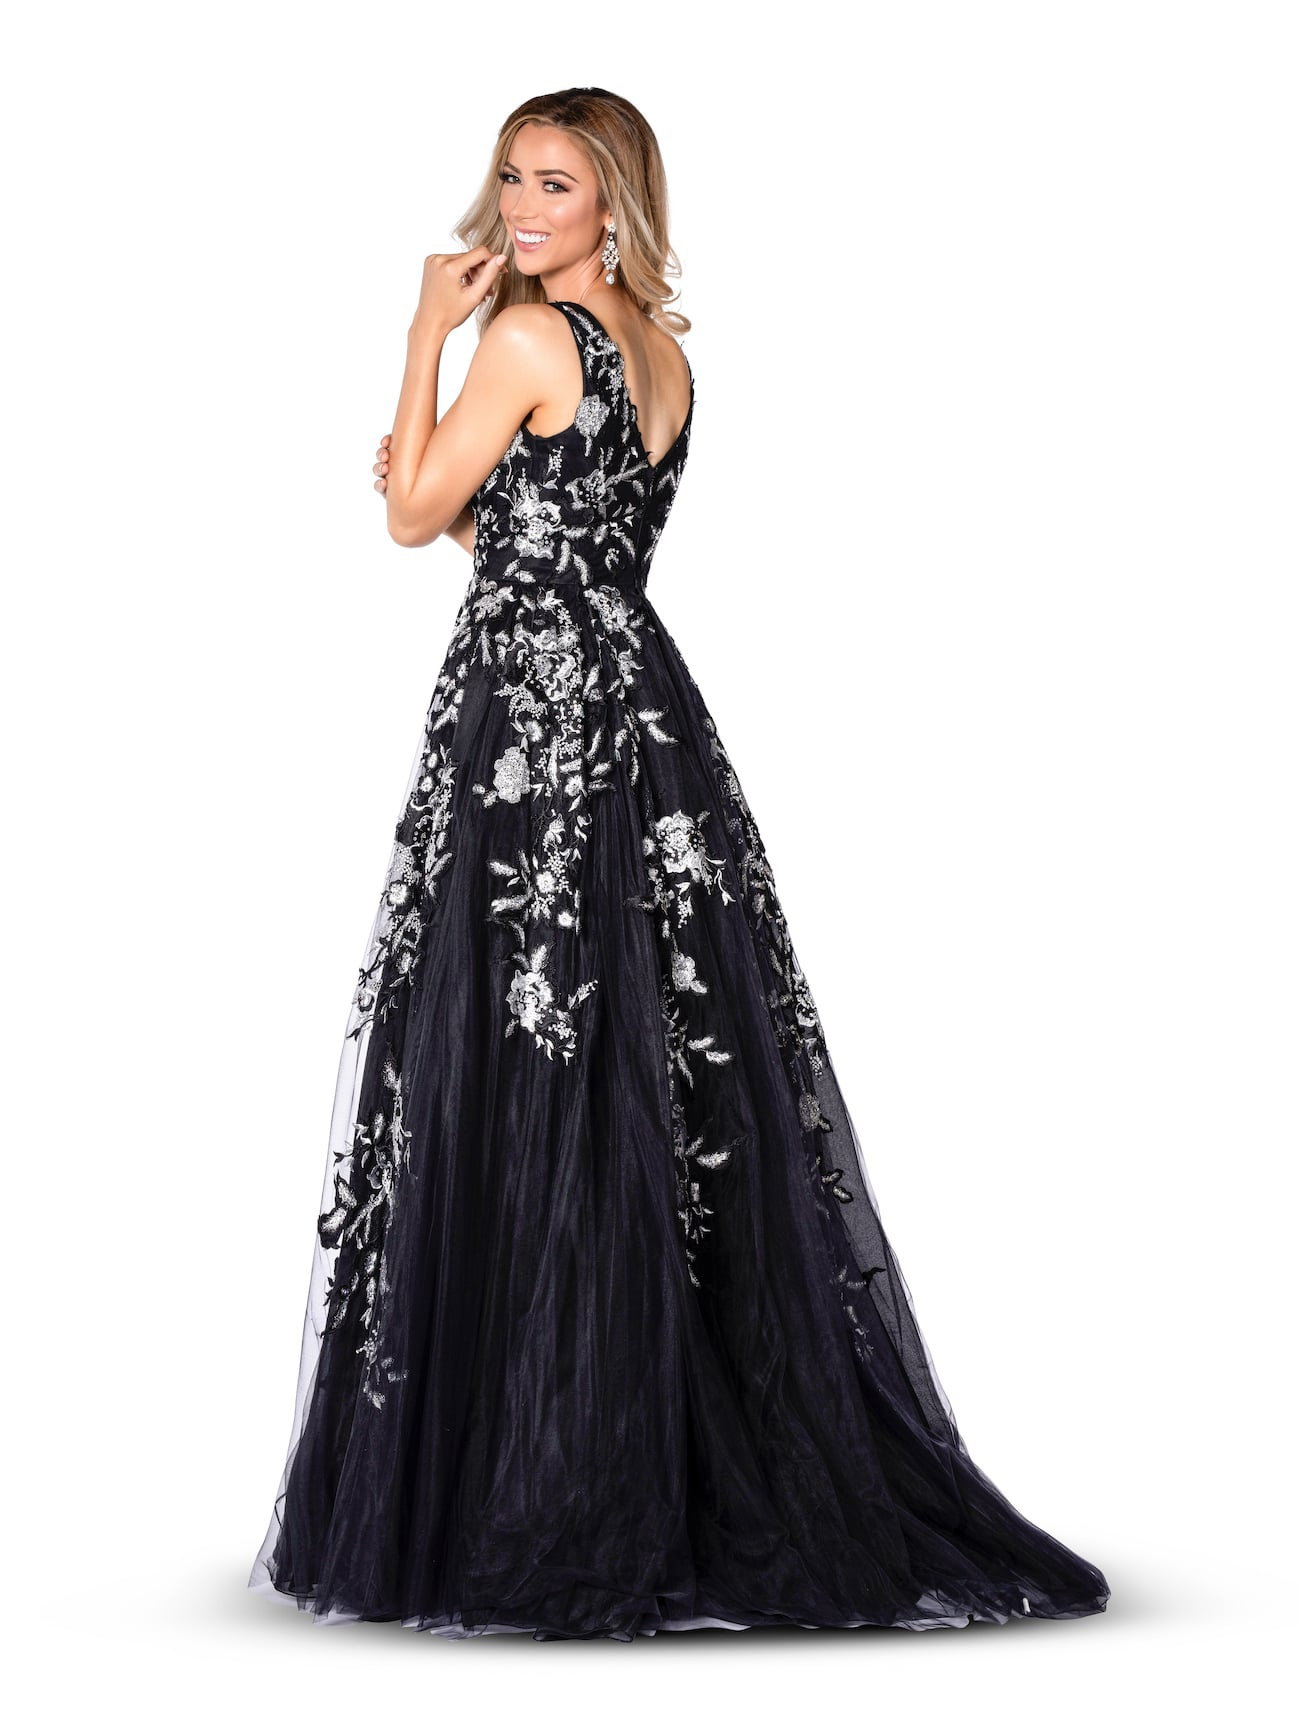 Vienna Black Size 8 Overskirt Plunge Floral A-line Dress on Queenly